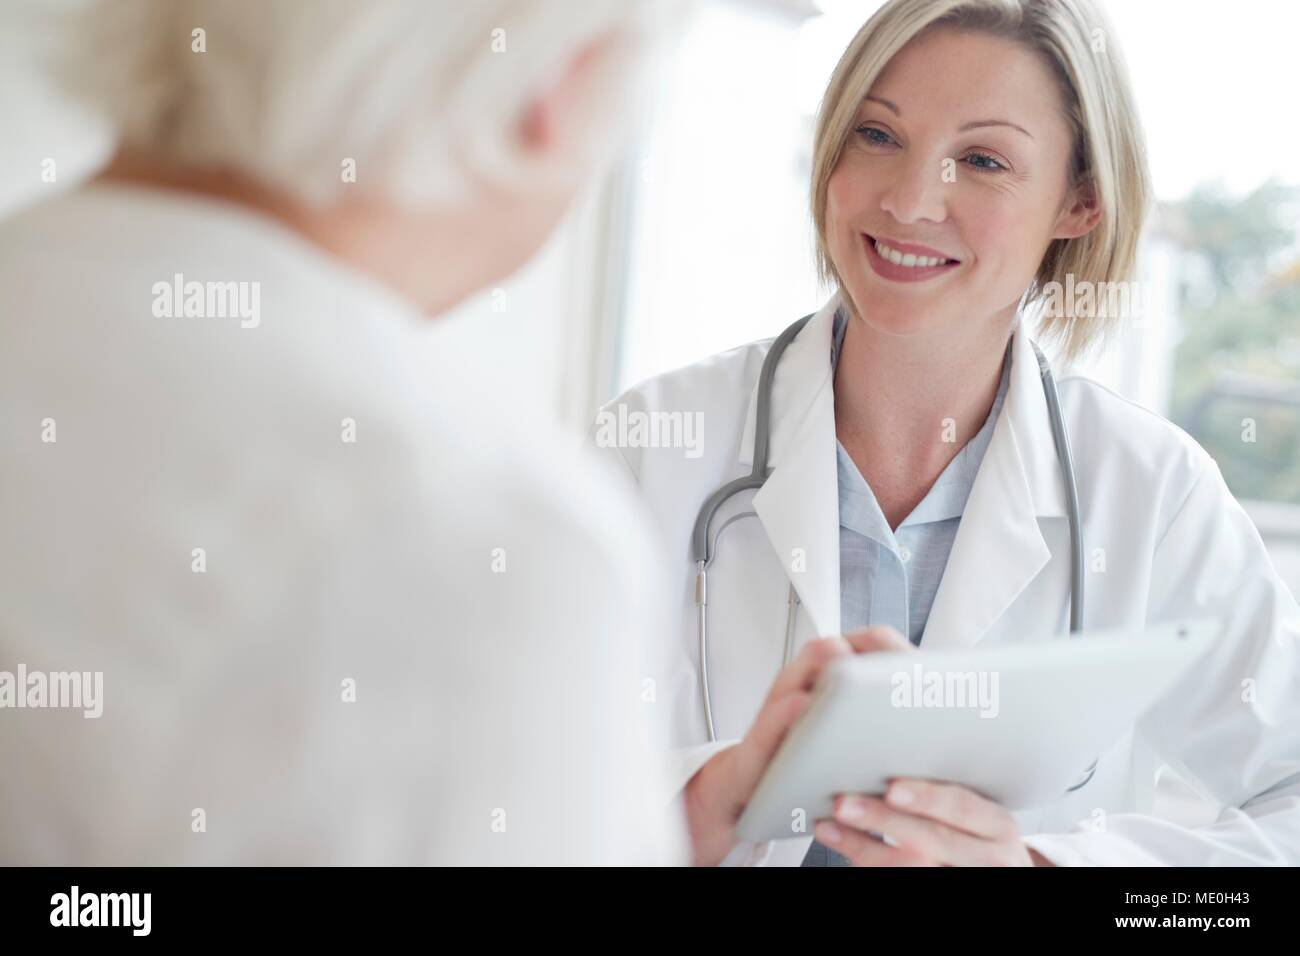 Female doctor using digital tablet with patient. - Stock Image